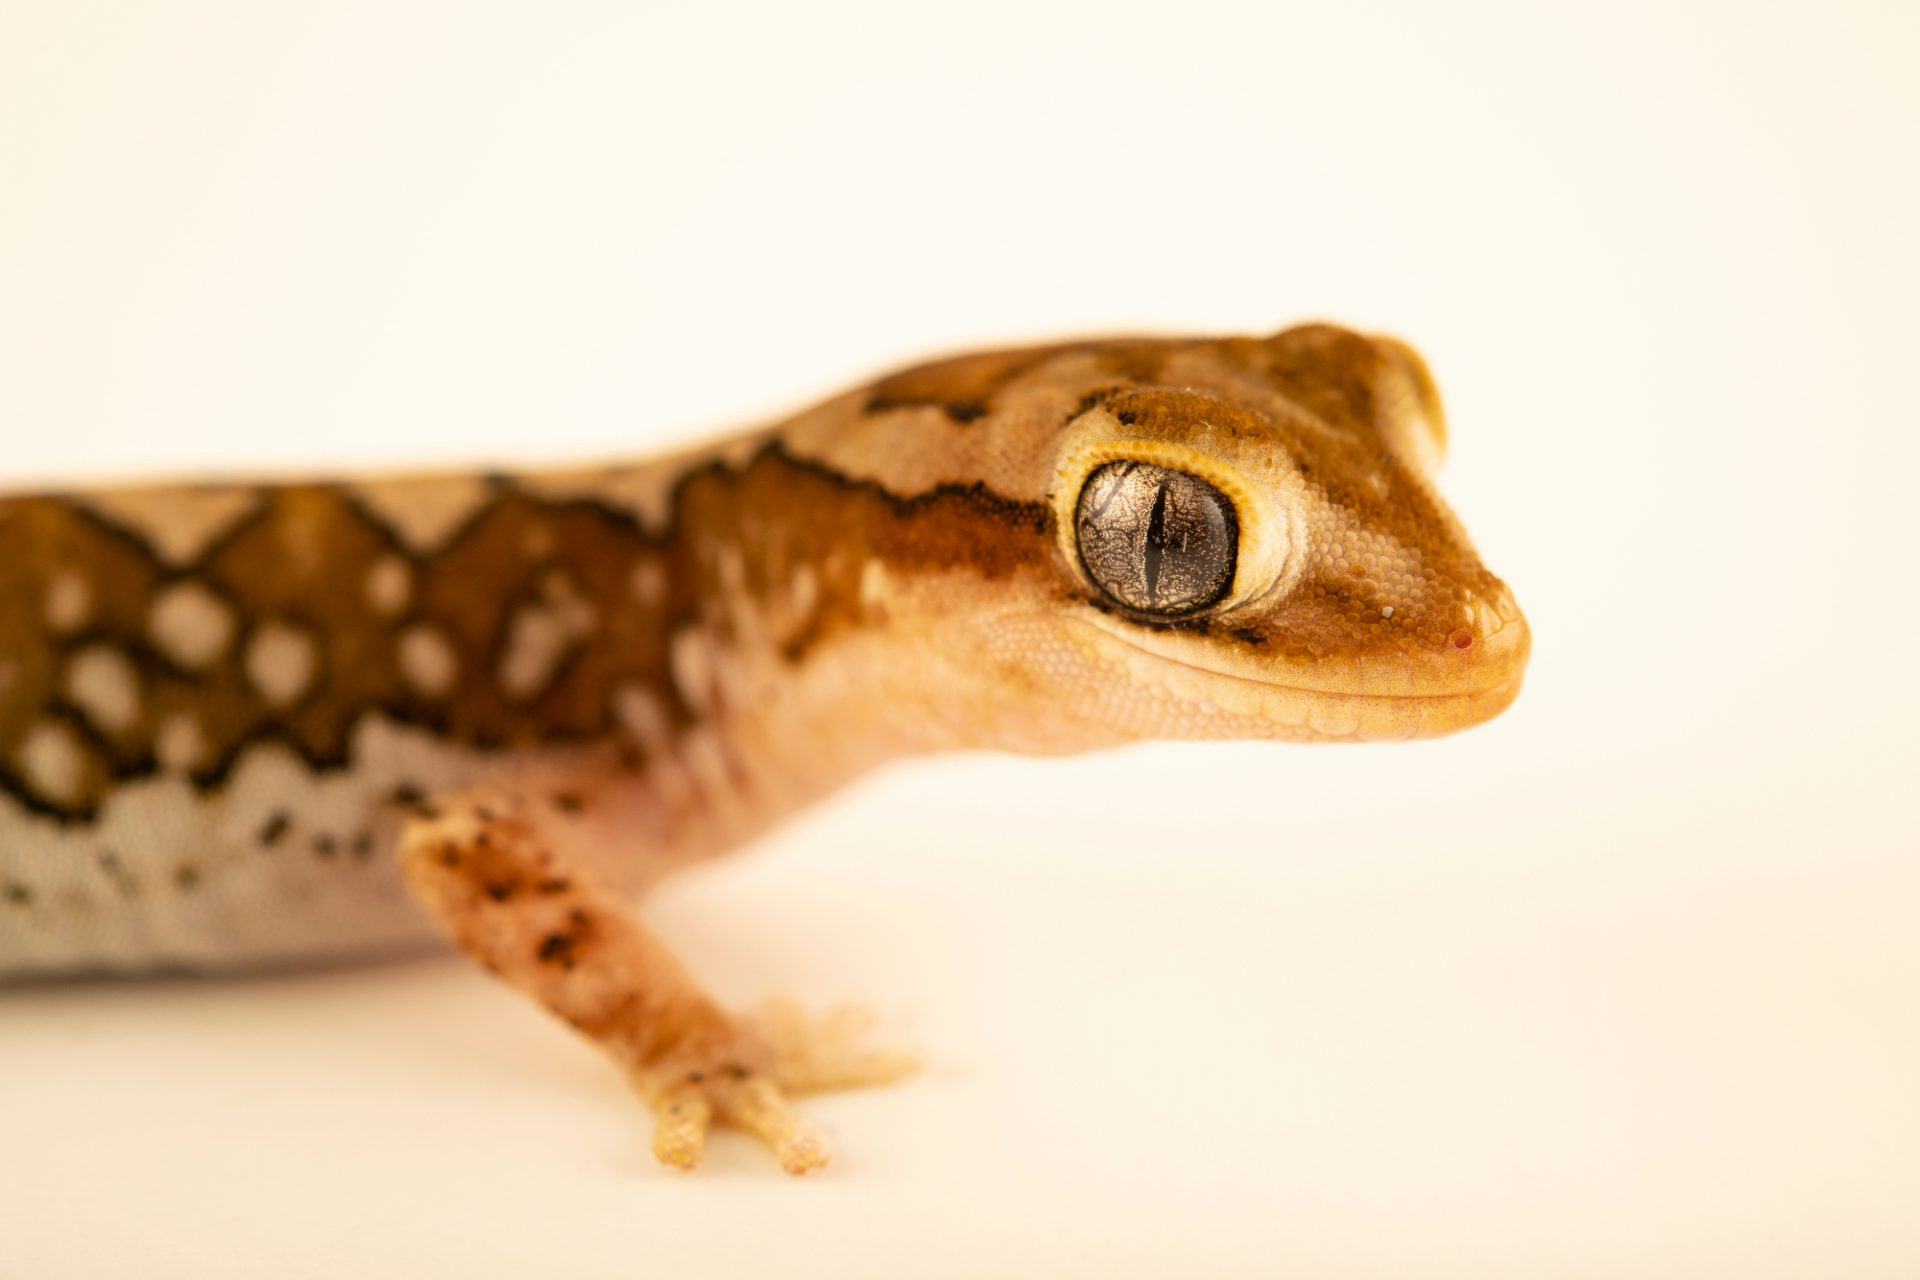 Photo: A Ranges stone gecko (Diplodactylus furcosus) from a private collection.